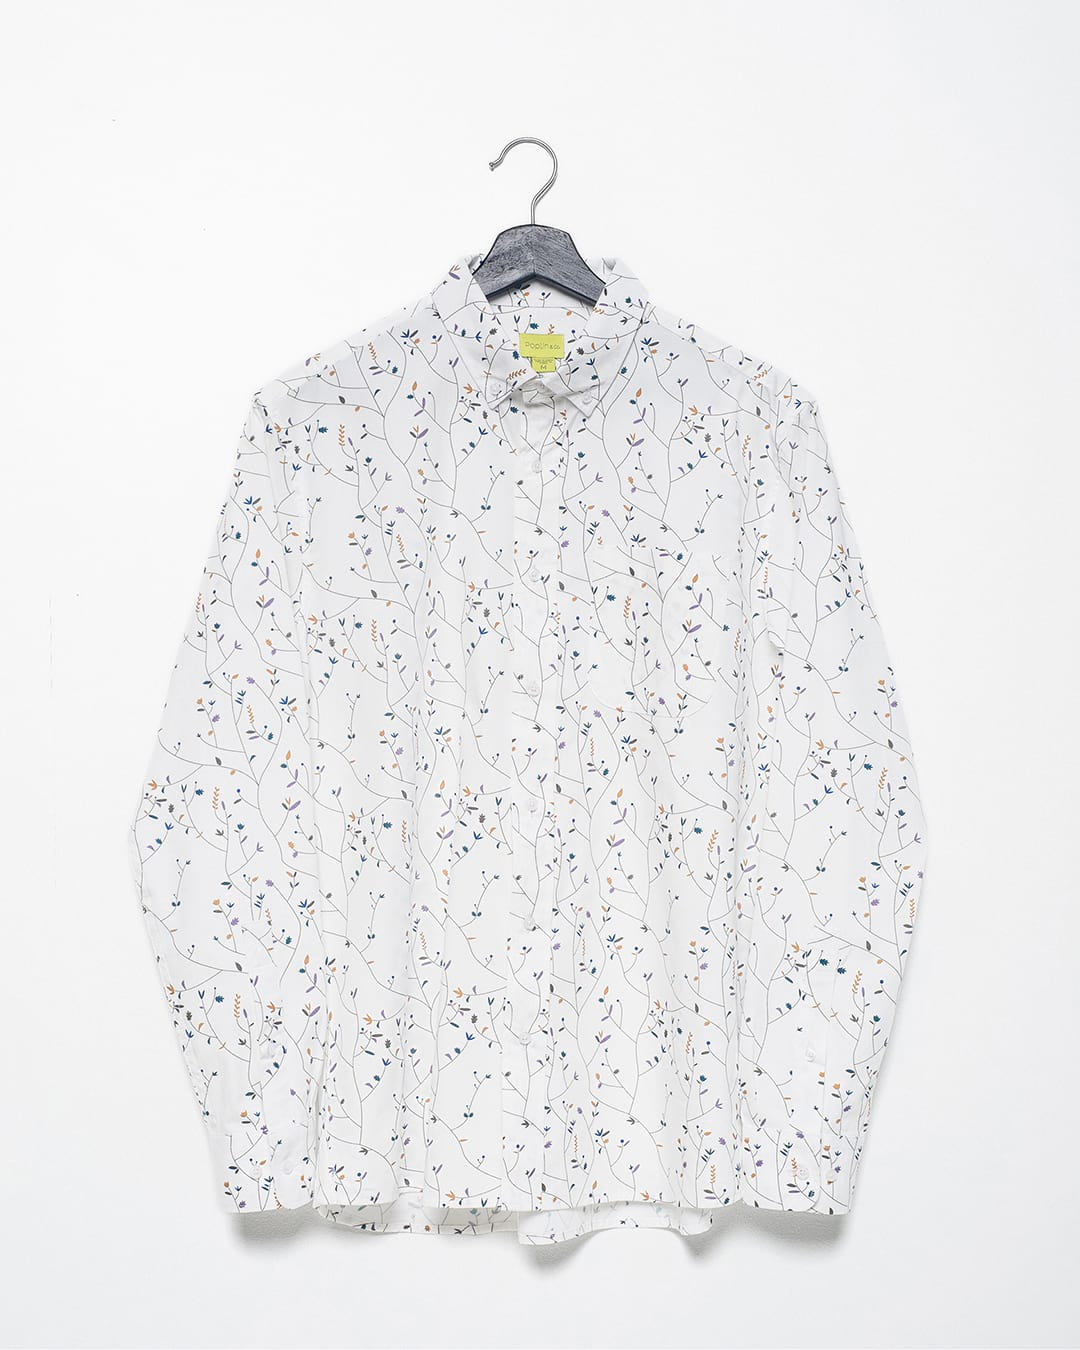 Cotton Poplin Weave product flat of a floral vine printed long sleeve shirt